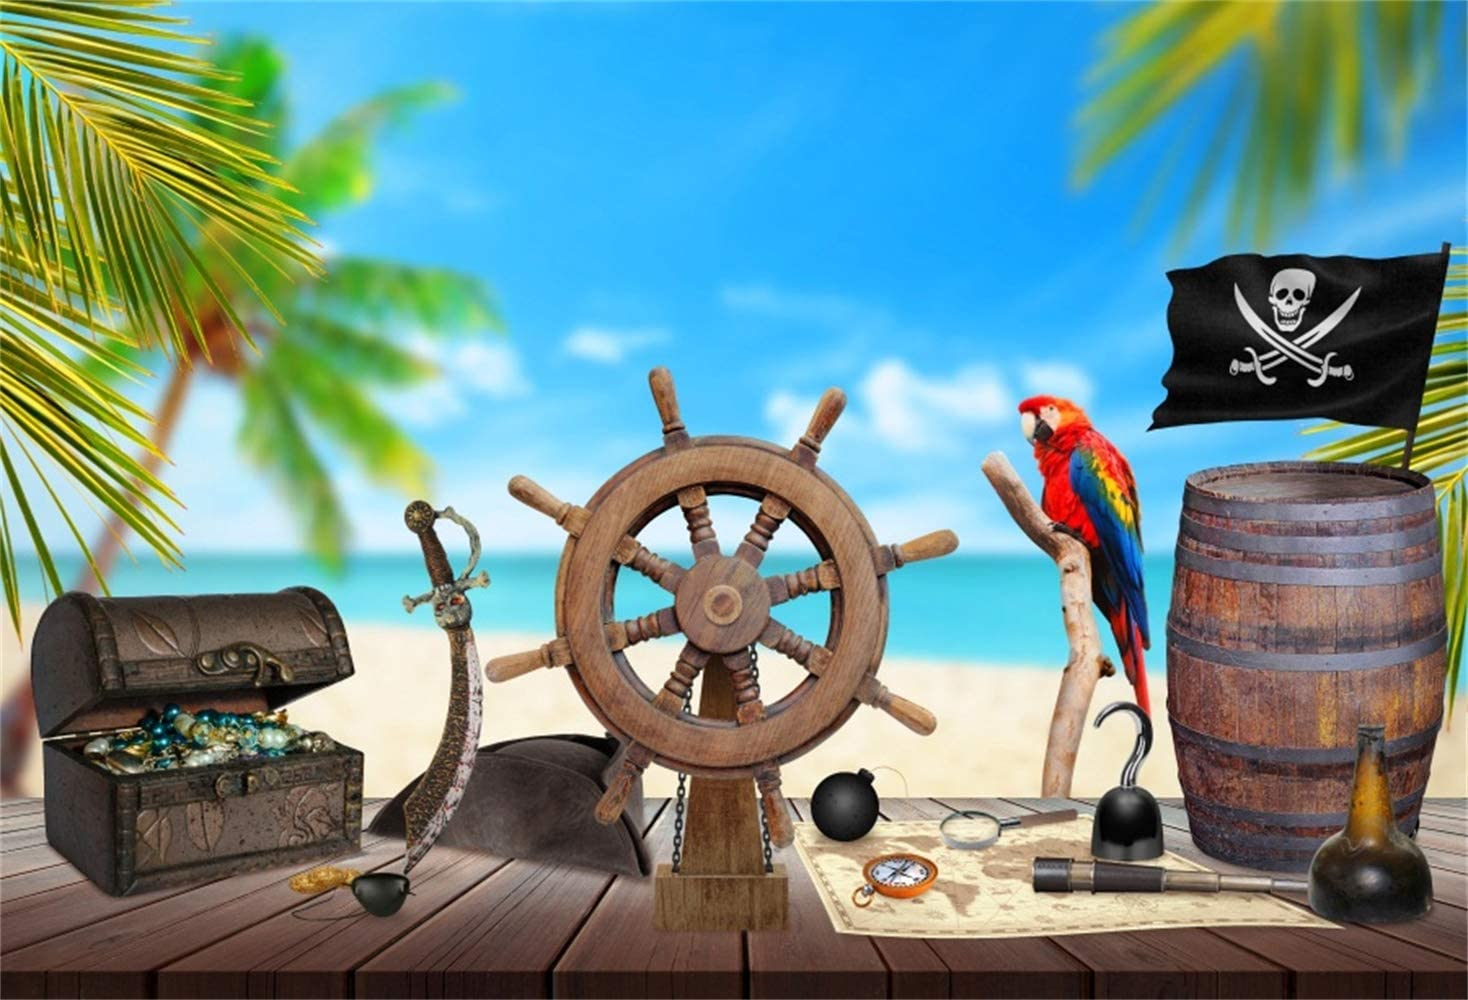 7x10 FT Pirates Vinyl Photography Backdrop,Pirates Crocodile Octopus Shark Crab Seagulls Parrot Bottle of Rum Cartoon Style Background for Baby Birthday Party Wedding Studio Props Photography